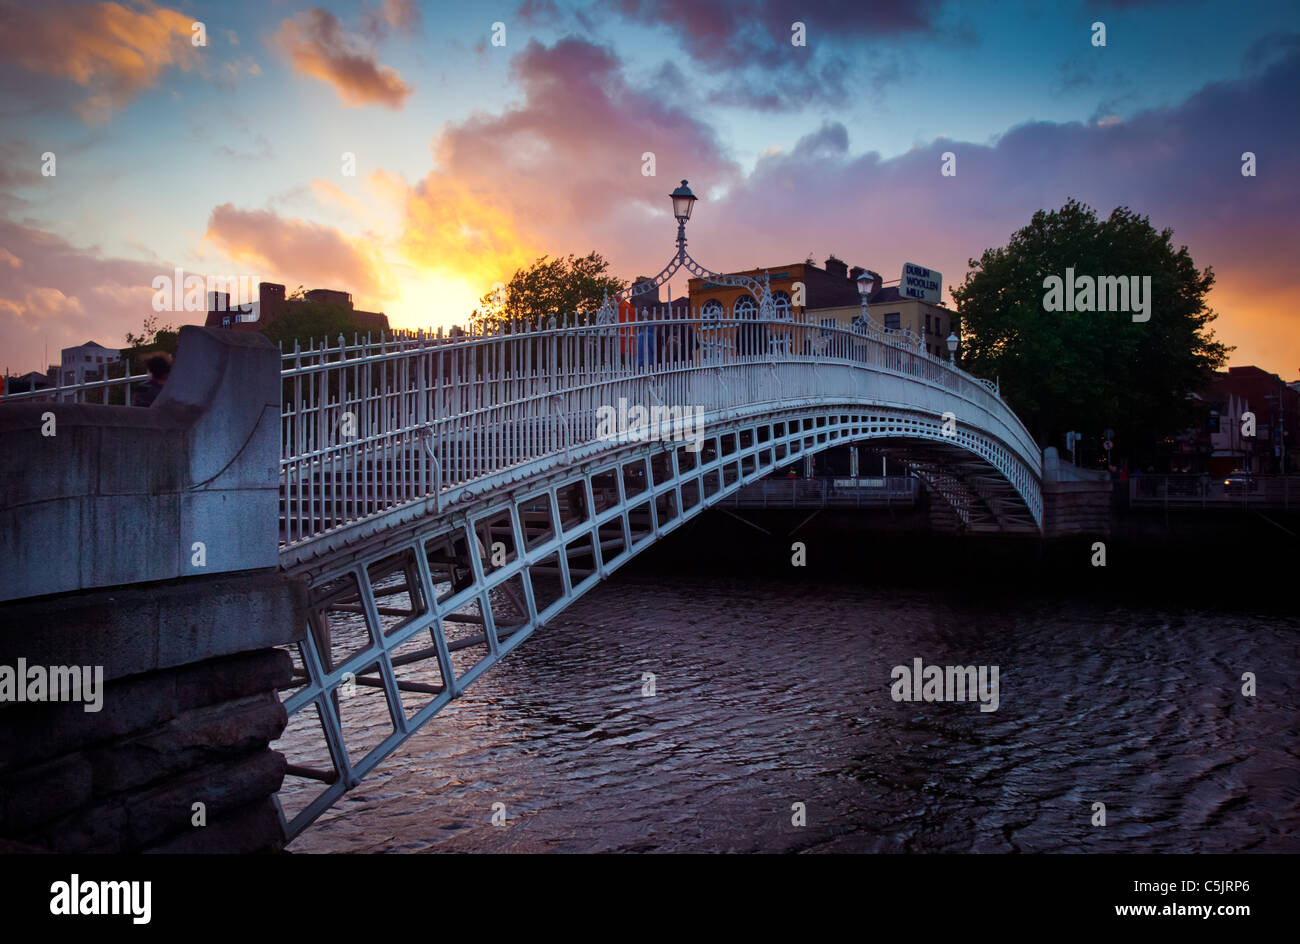 Liffey, or Ha'Penny, Bridge in Dublin, Ireland at dusk - Stock Image